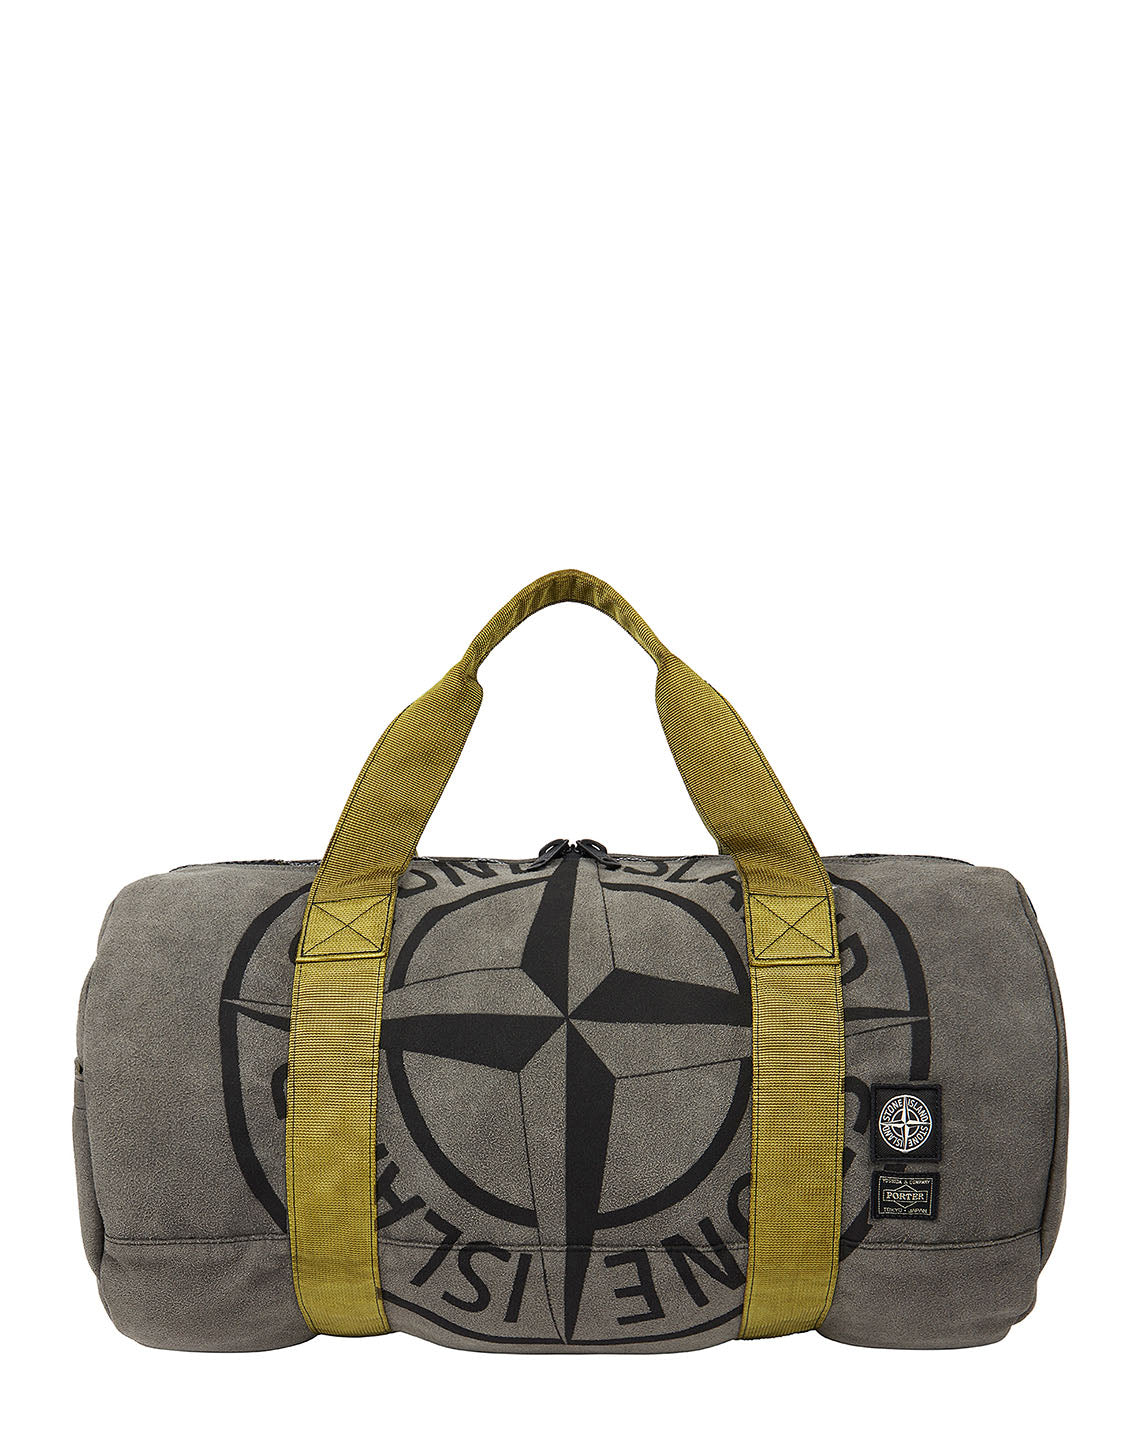 913P1 STONE ISLAND/PORTER STONE ISLAND MAN MADE SUEDE_GARMENT DYED BAG in Olive